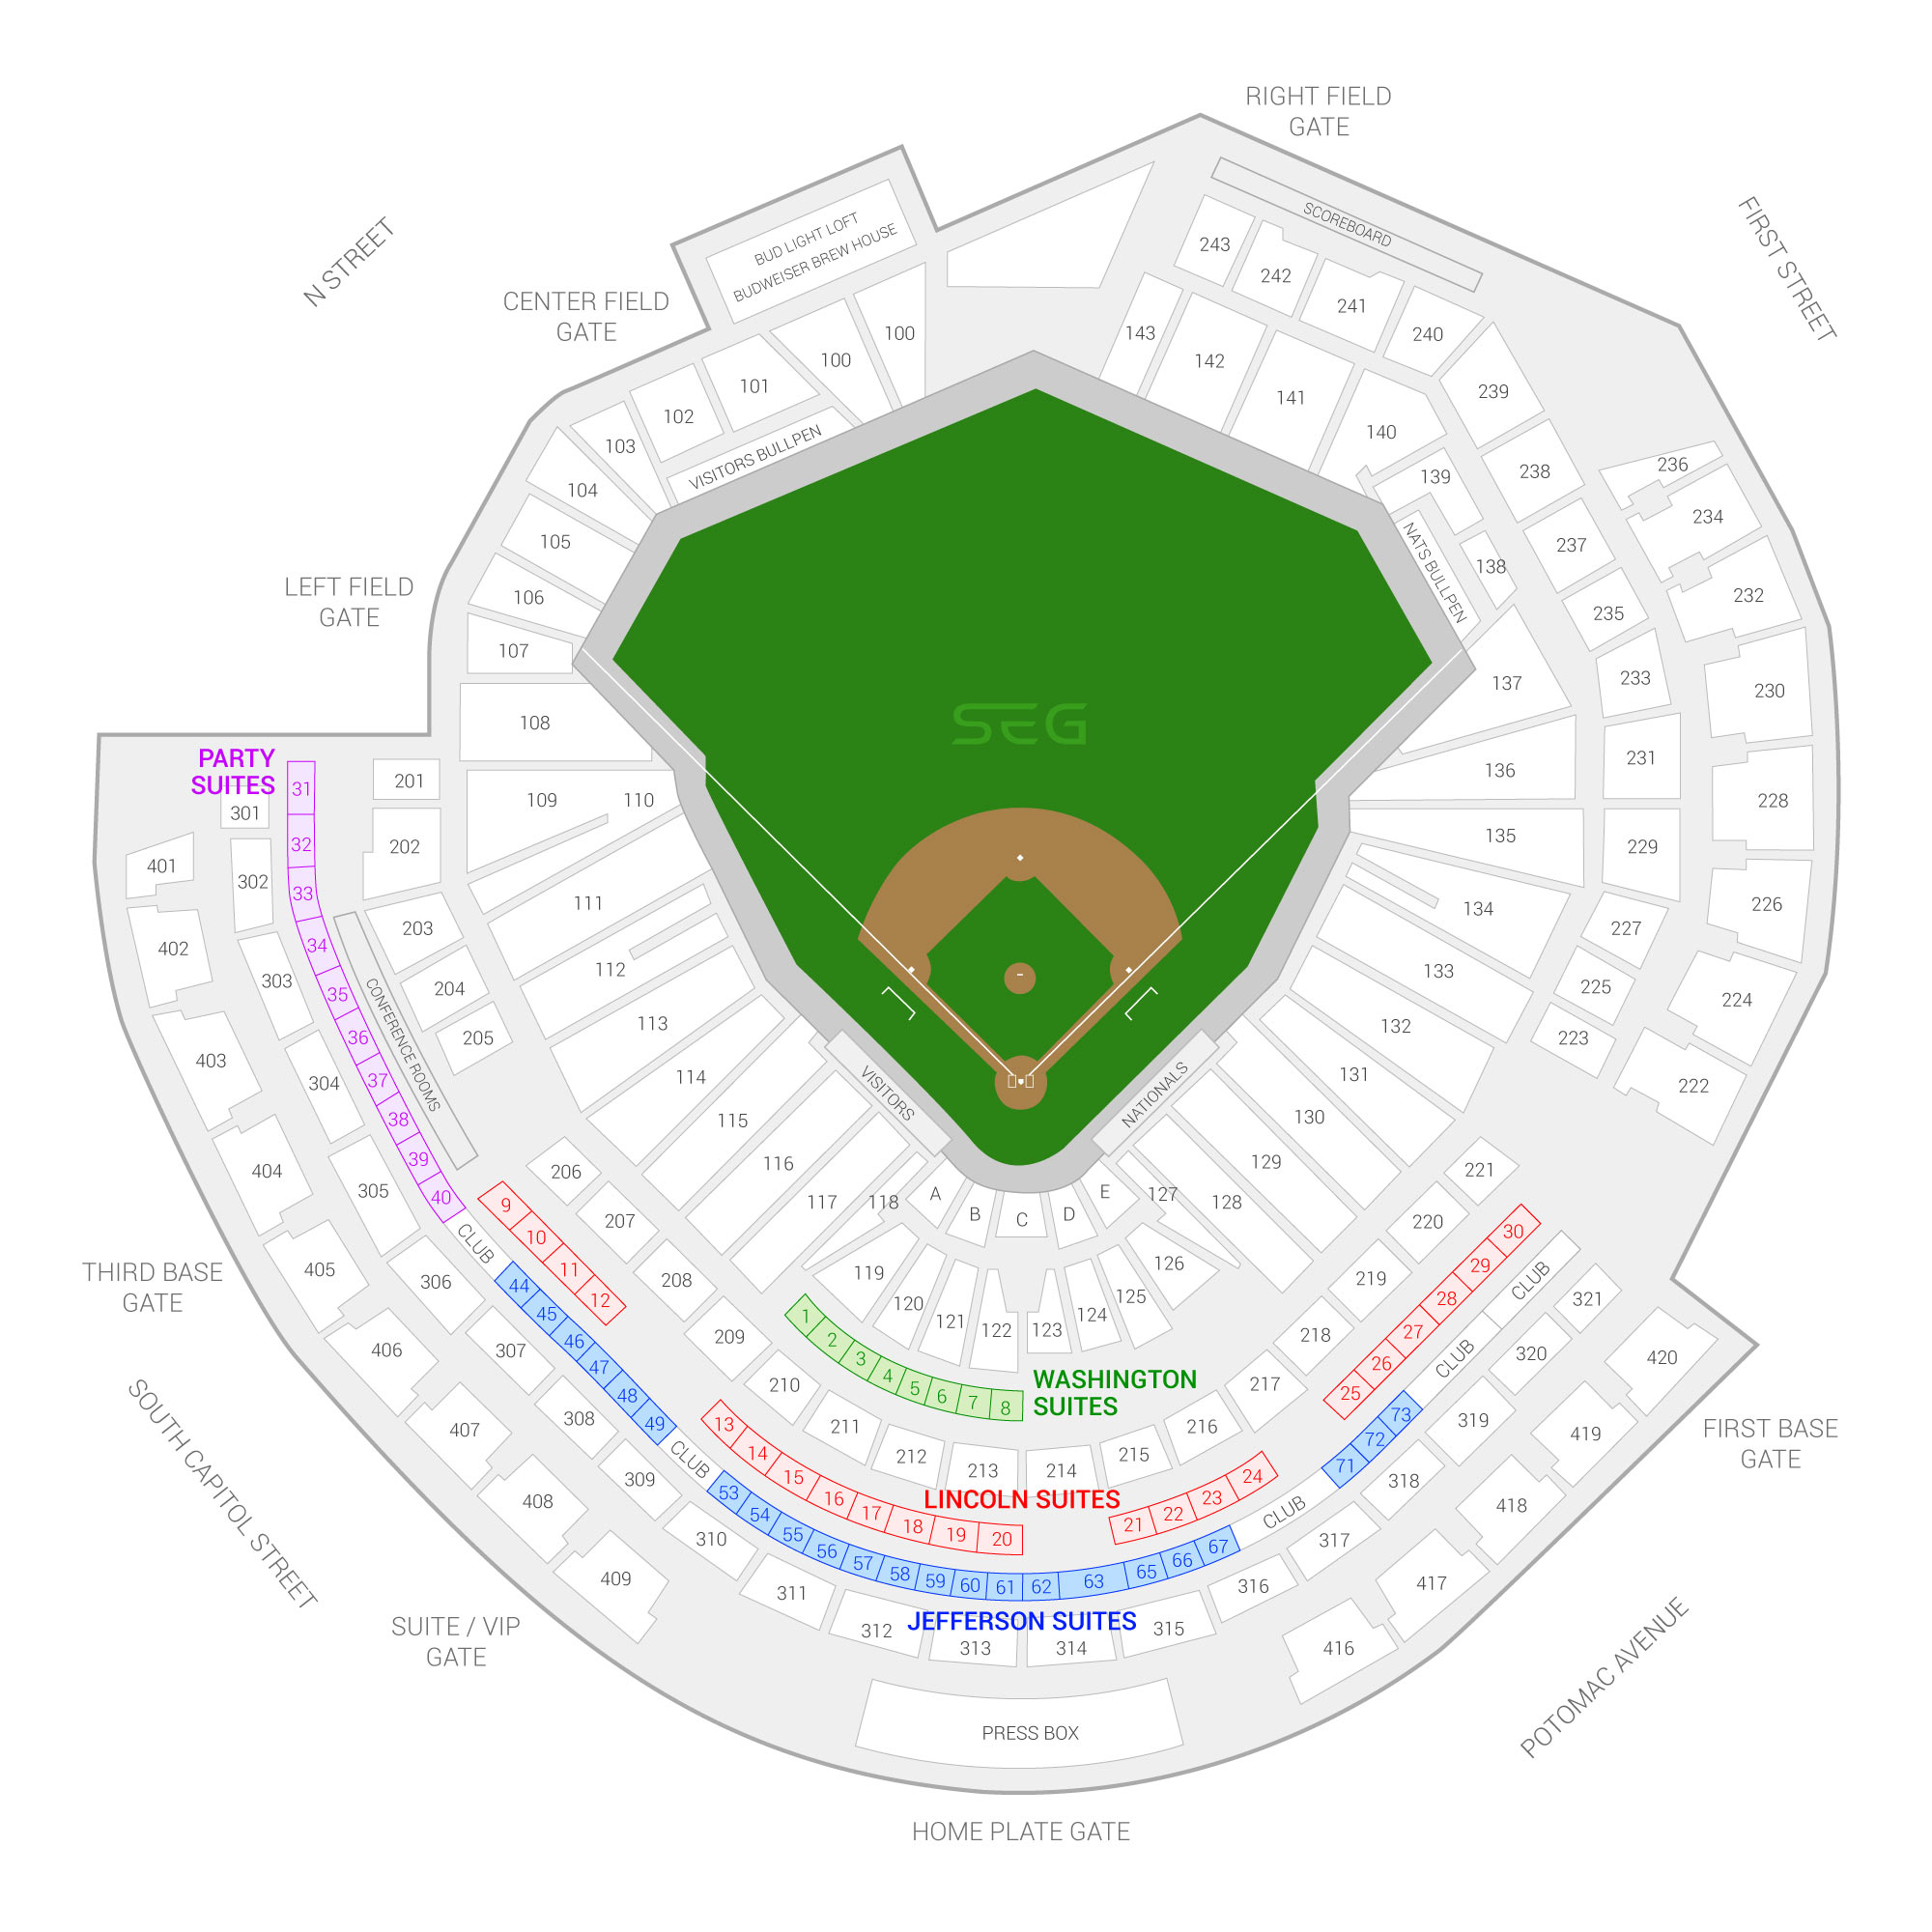 Nationals Park Washington Nationals Suite Map and Seating Chart